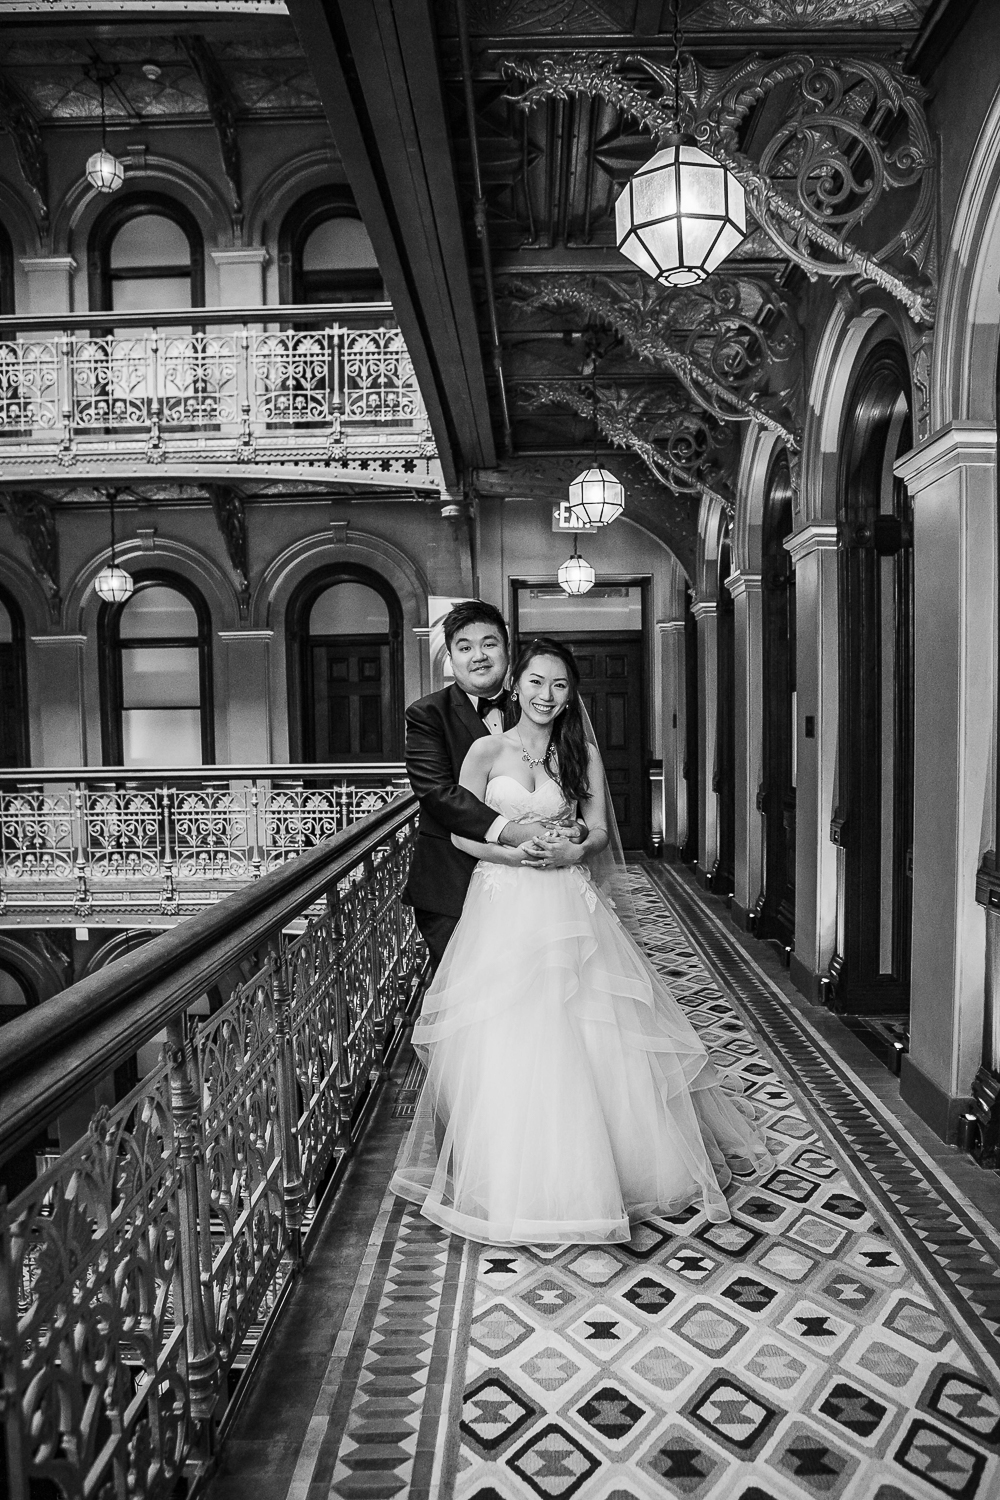 Bride and groom pose for wedding photos at the Beekman Hotel in New York City | Beekman Hotel Wedding Photos | Jason and Susanna's Glam NYC Elopement